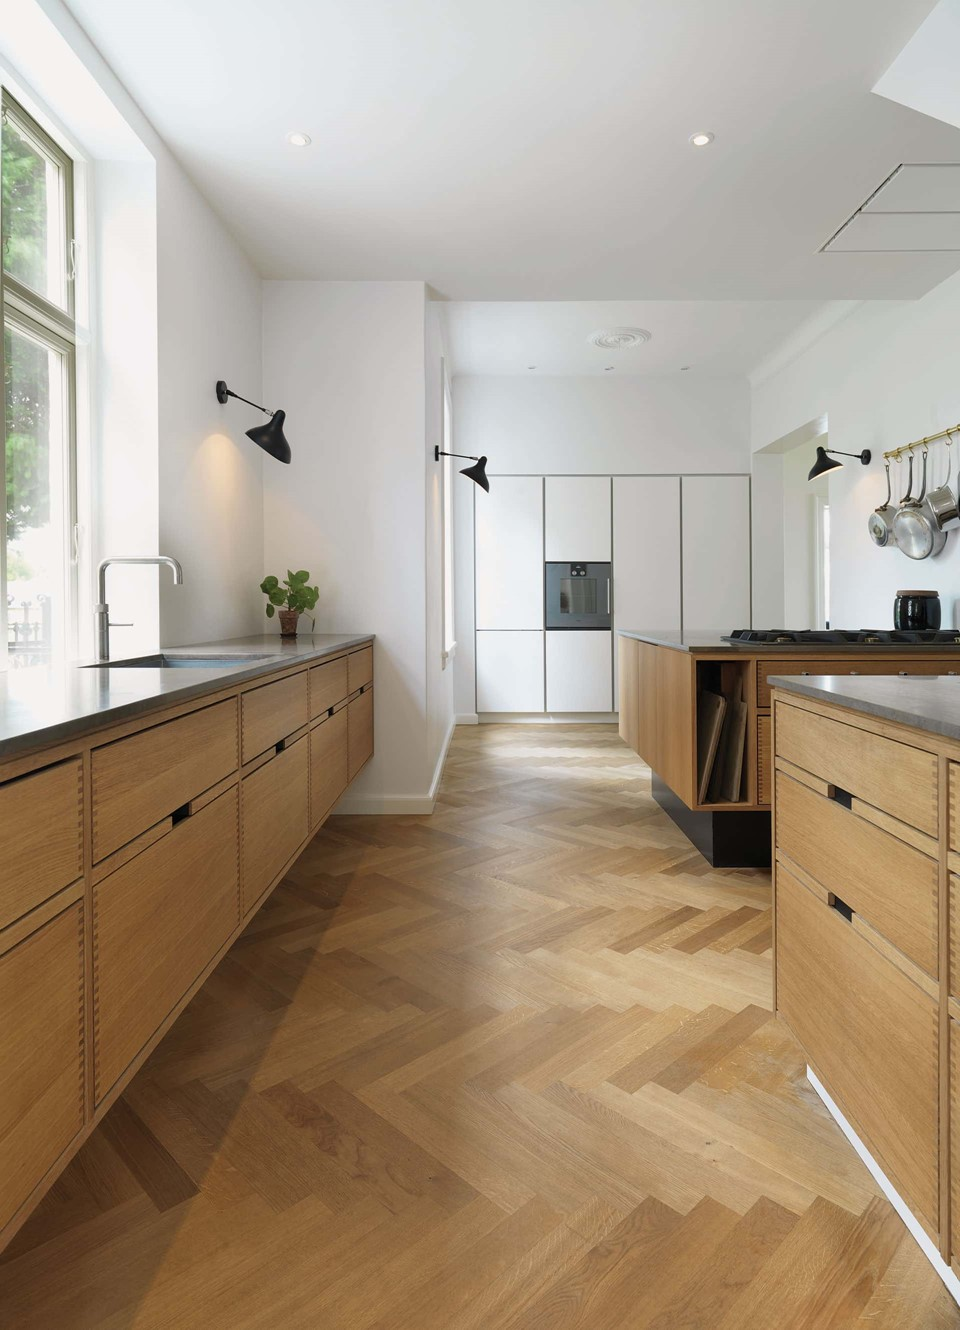 oak-herringbone-floor_natural-oil_villa-gentofte_oak-kitchen-snedkerkøkken_dinesen.jpg